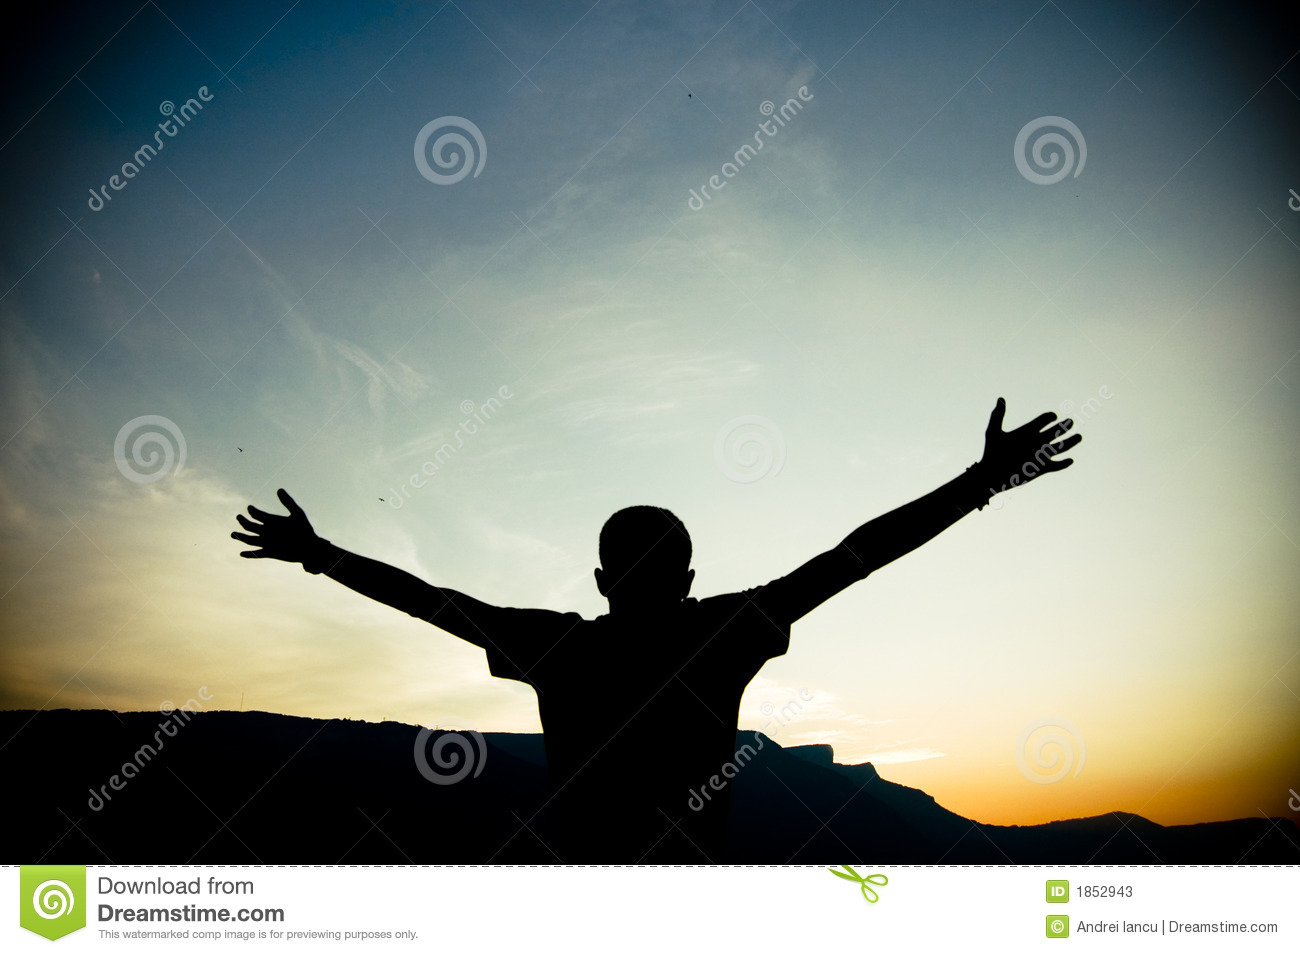 Silhouette of Outstretched Arms